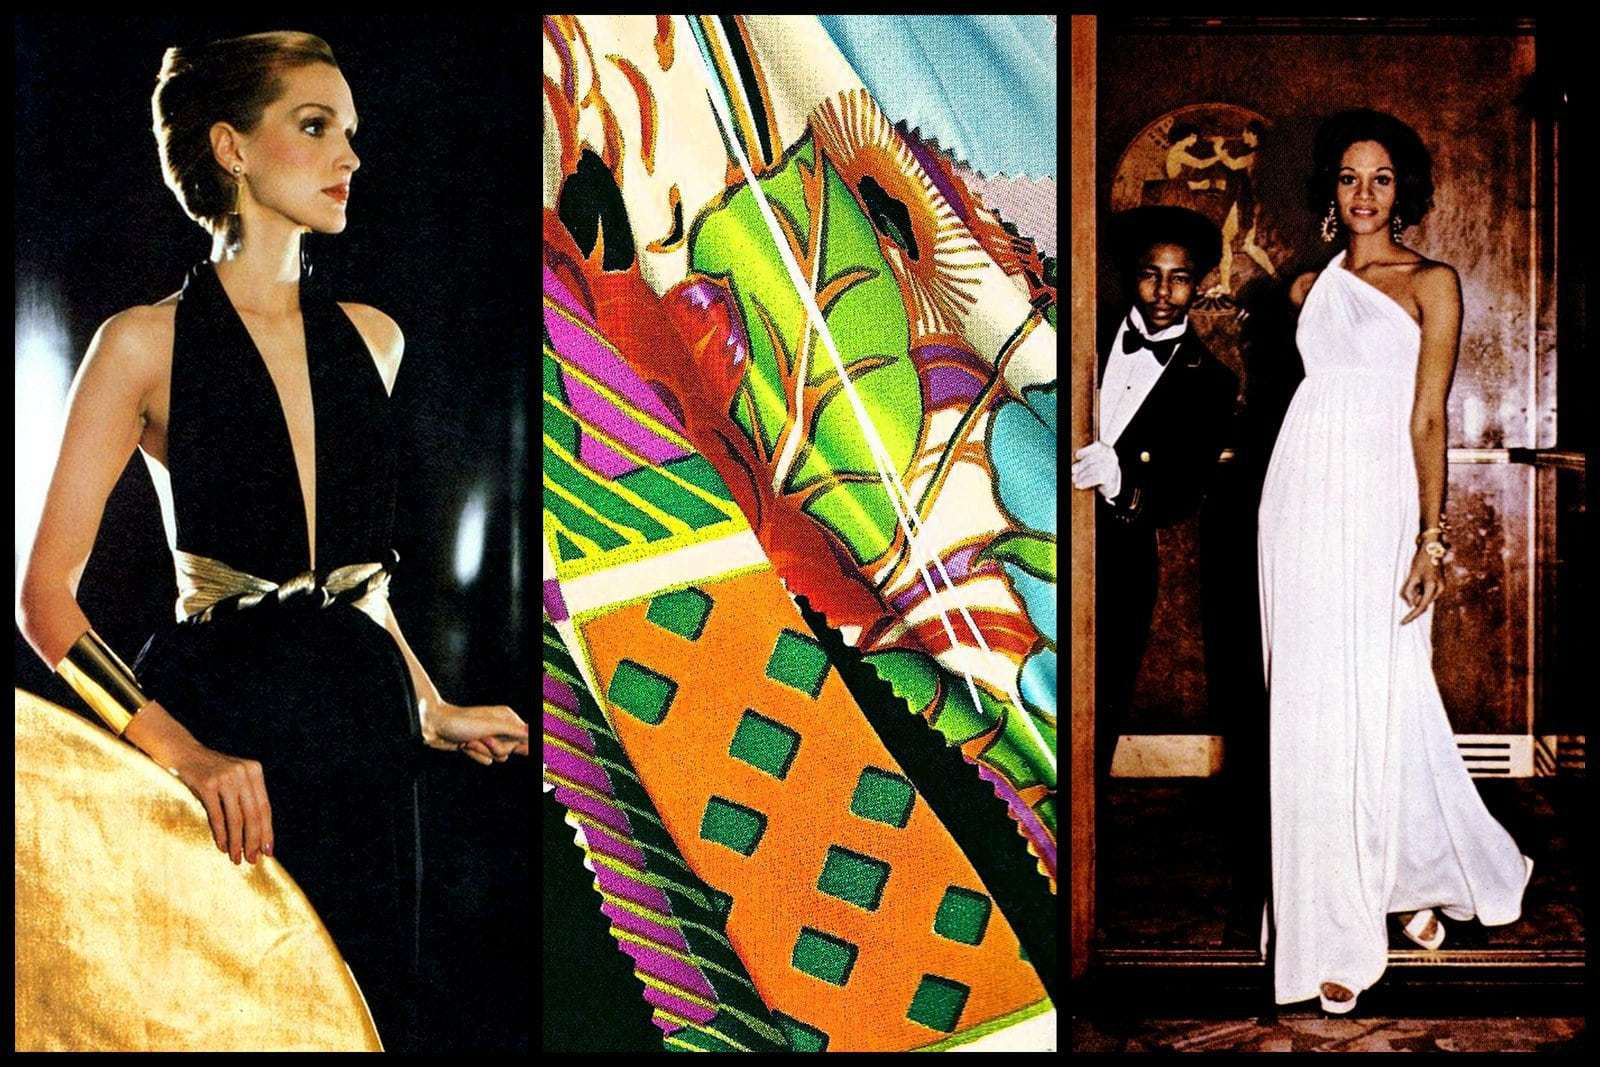 Vintage Qiana fashions from the 1970s